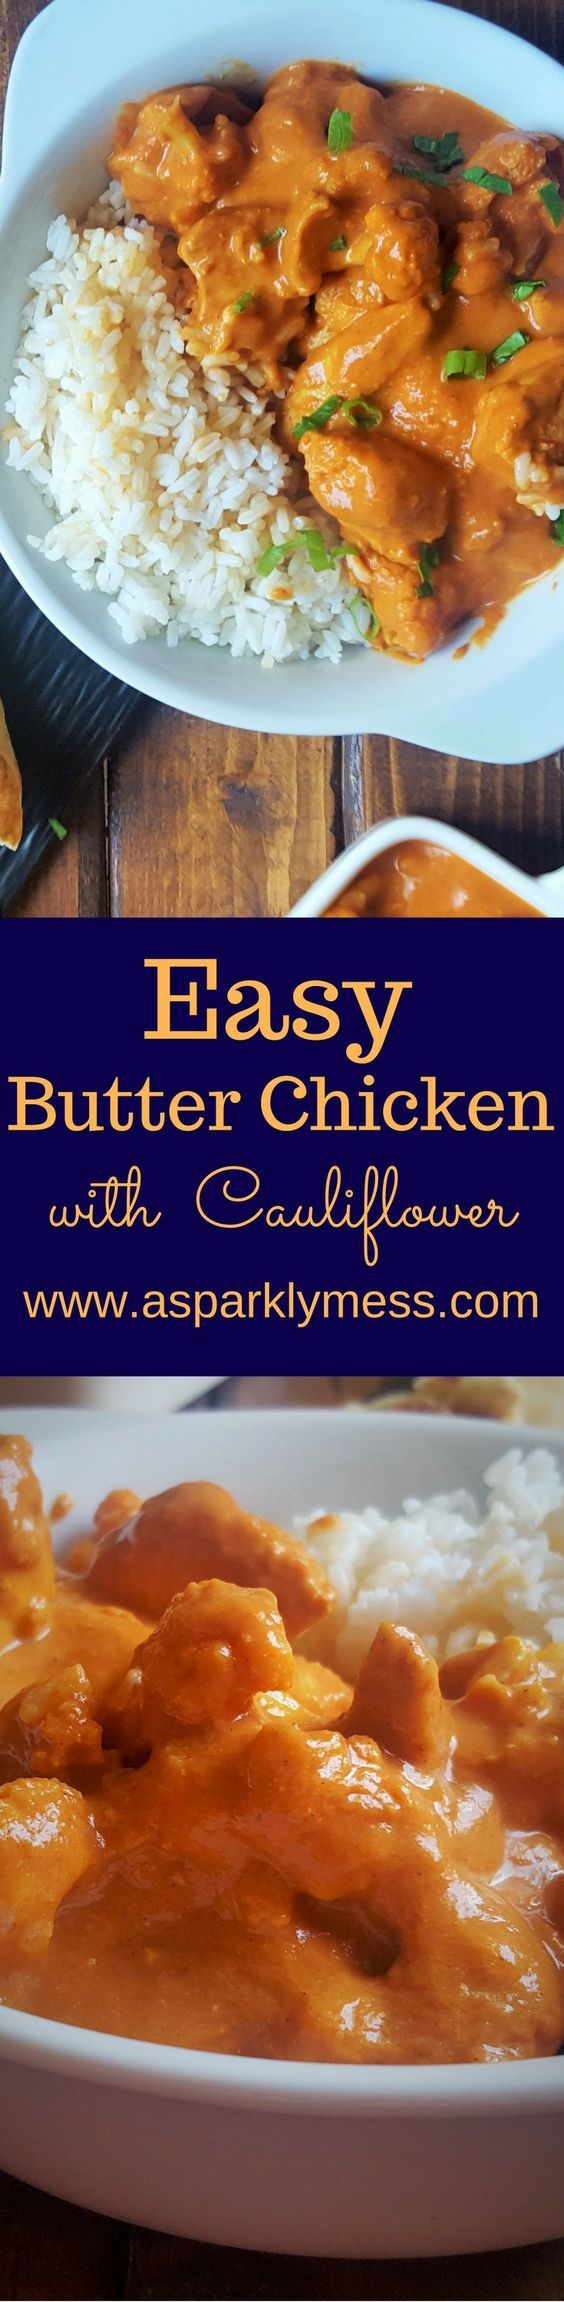 Easy Healthier Butter Chicken Recipe. Fast and Simple, Unbelievably Delicious Easy Butter Chicken with Cauliflower. This Easy Butter Chicken recipe is so velvety and flavorful, This is honestly one of my favorite dishes to make at home.